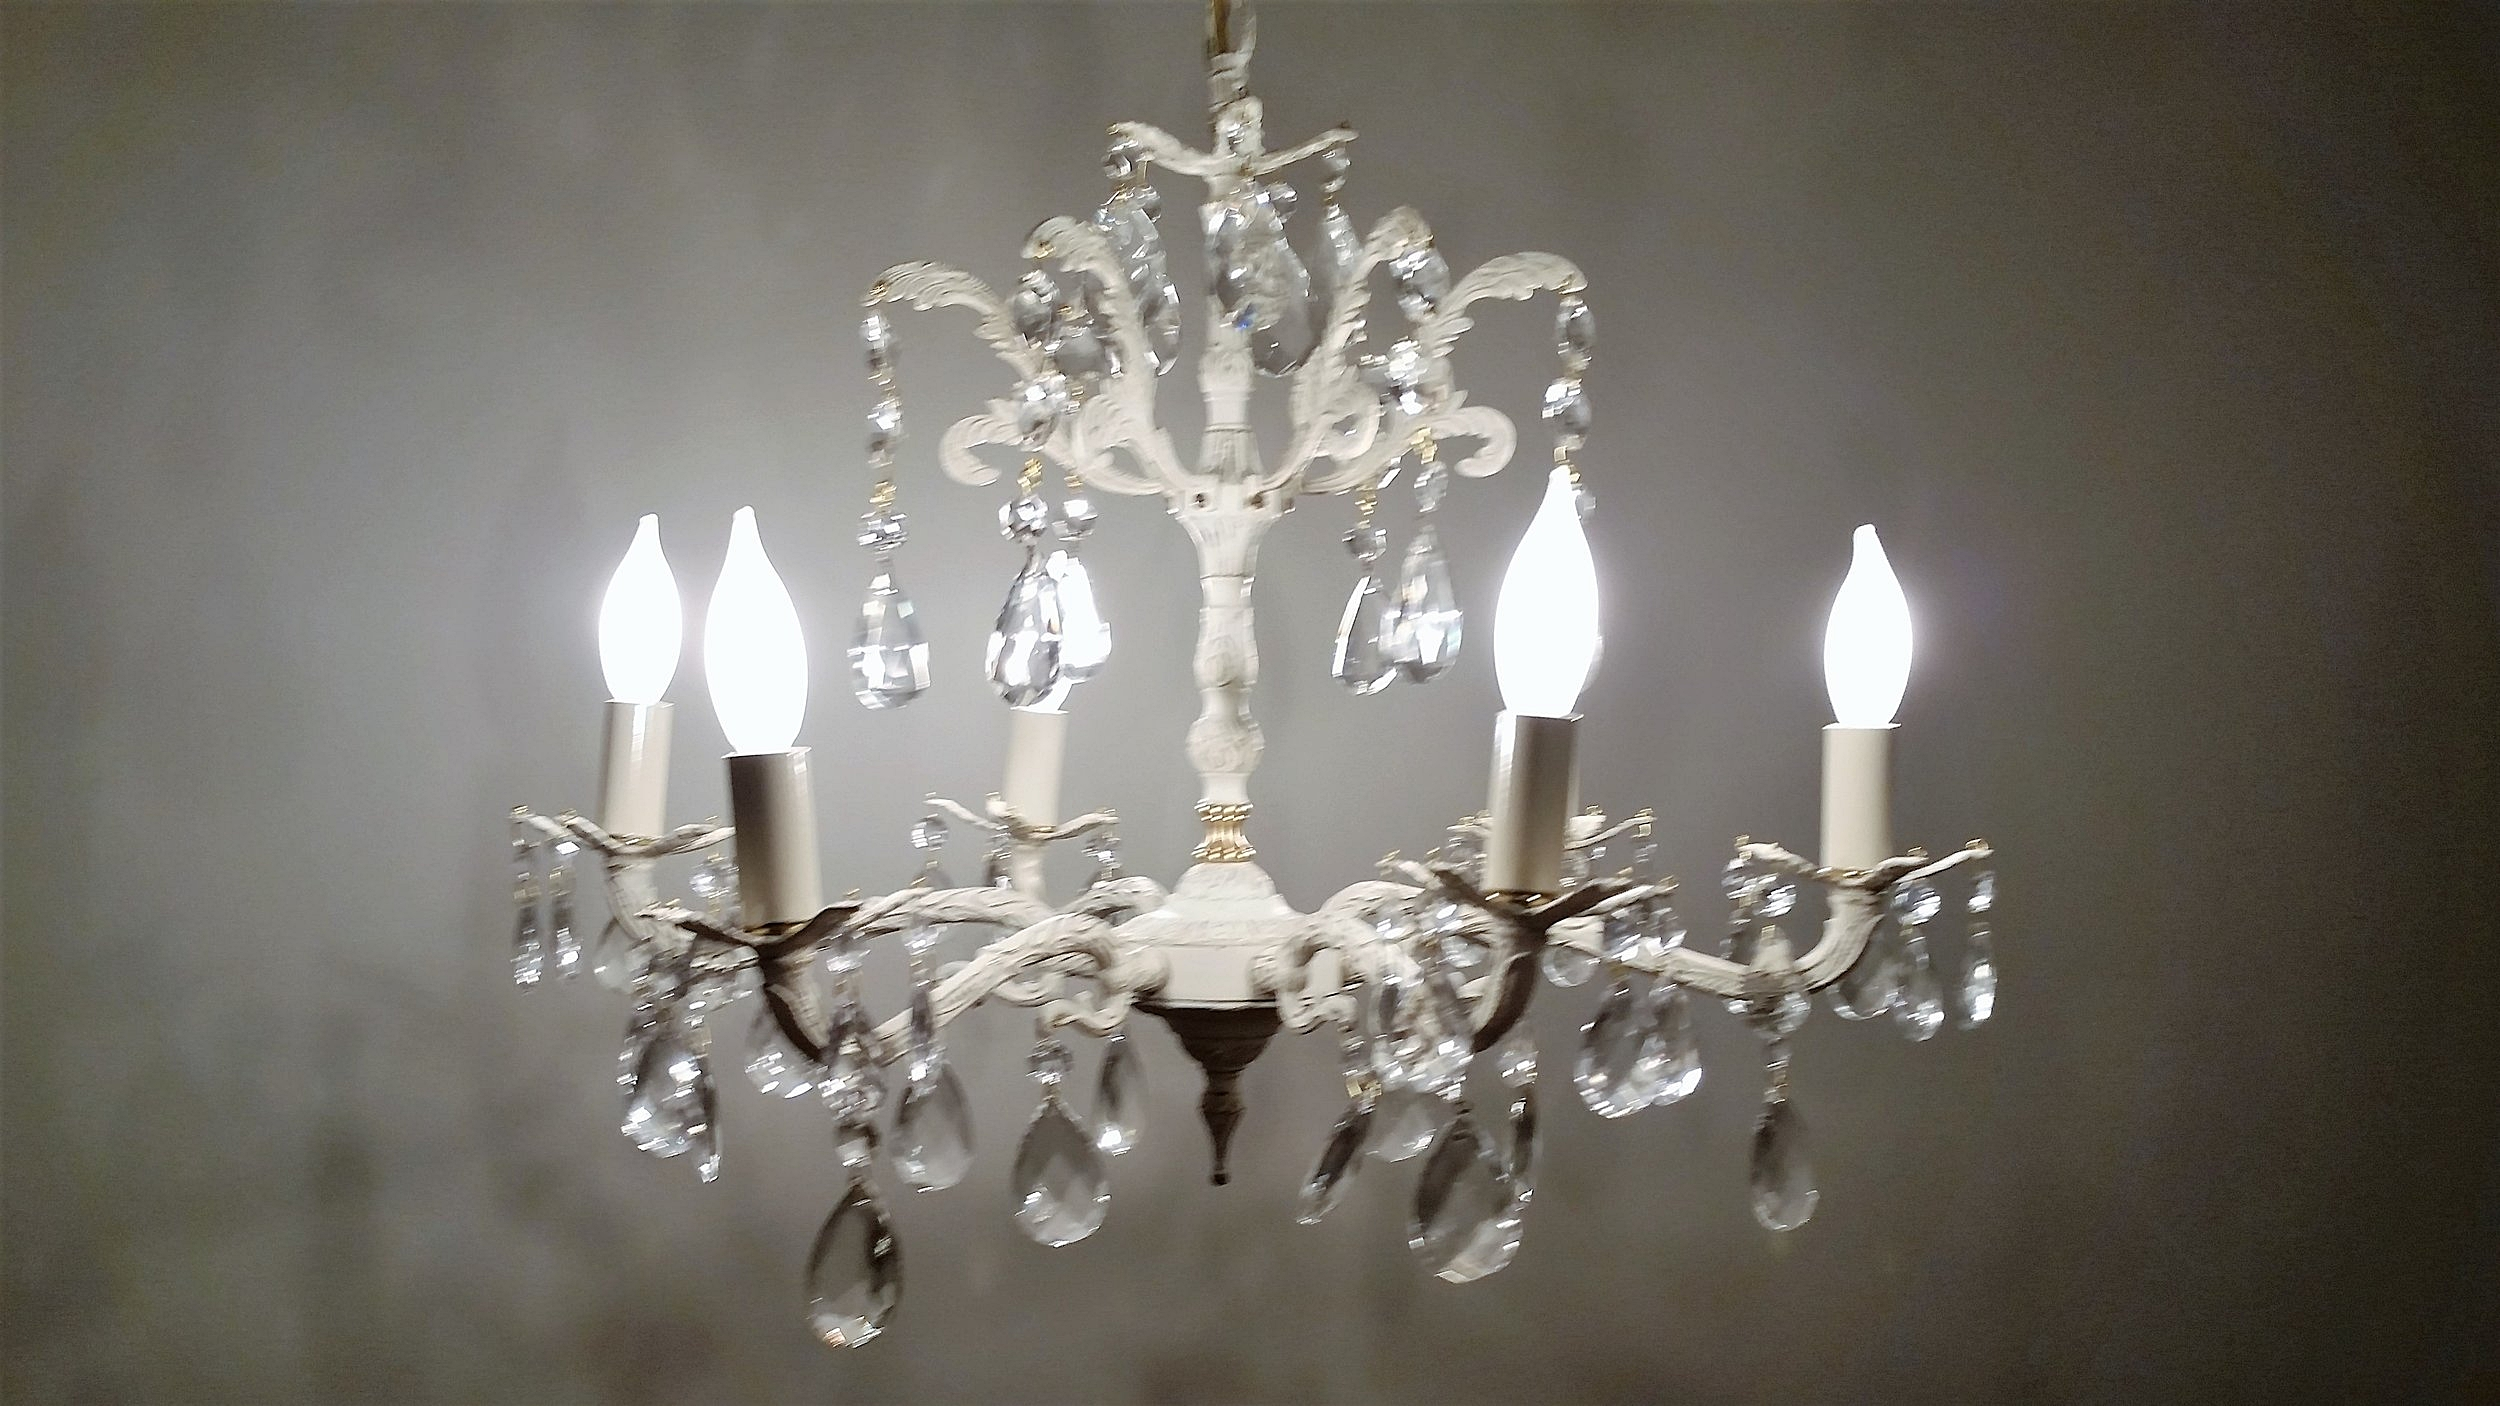 Chandelier - DescriptionQuantityPrice